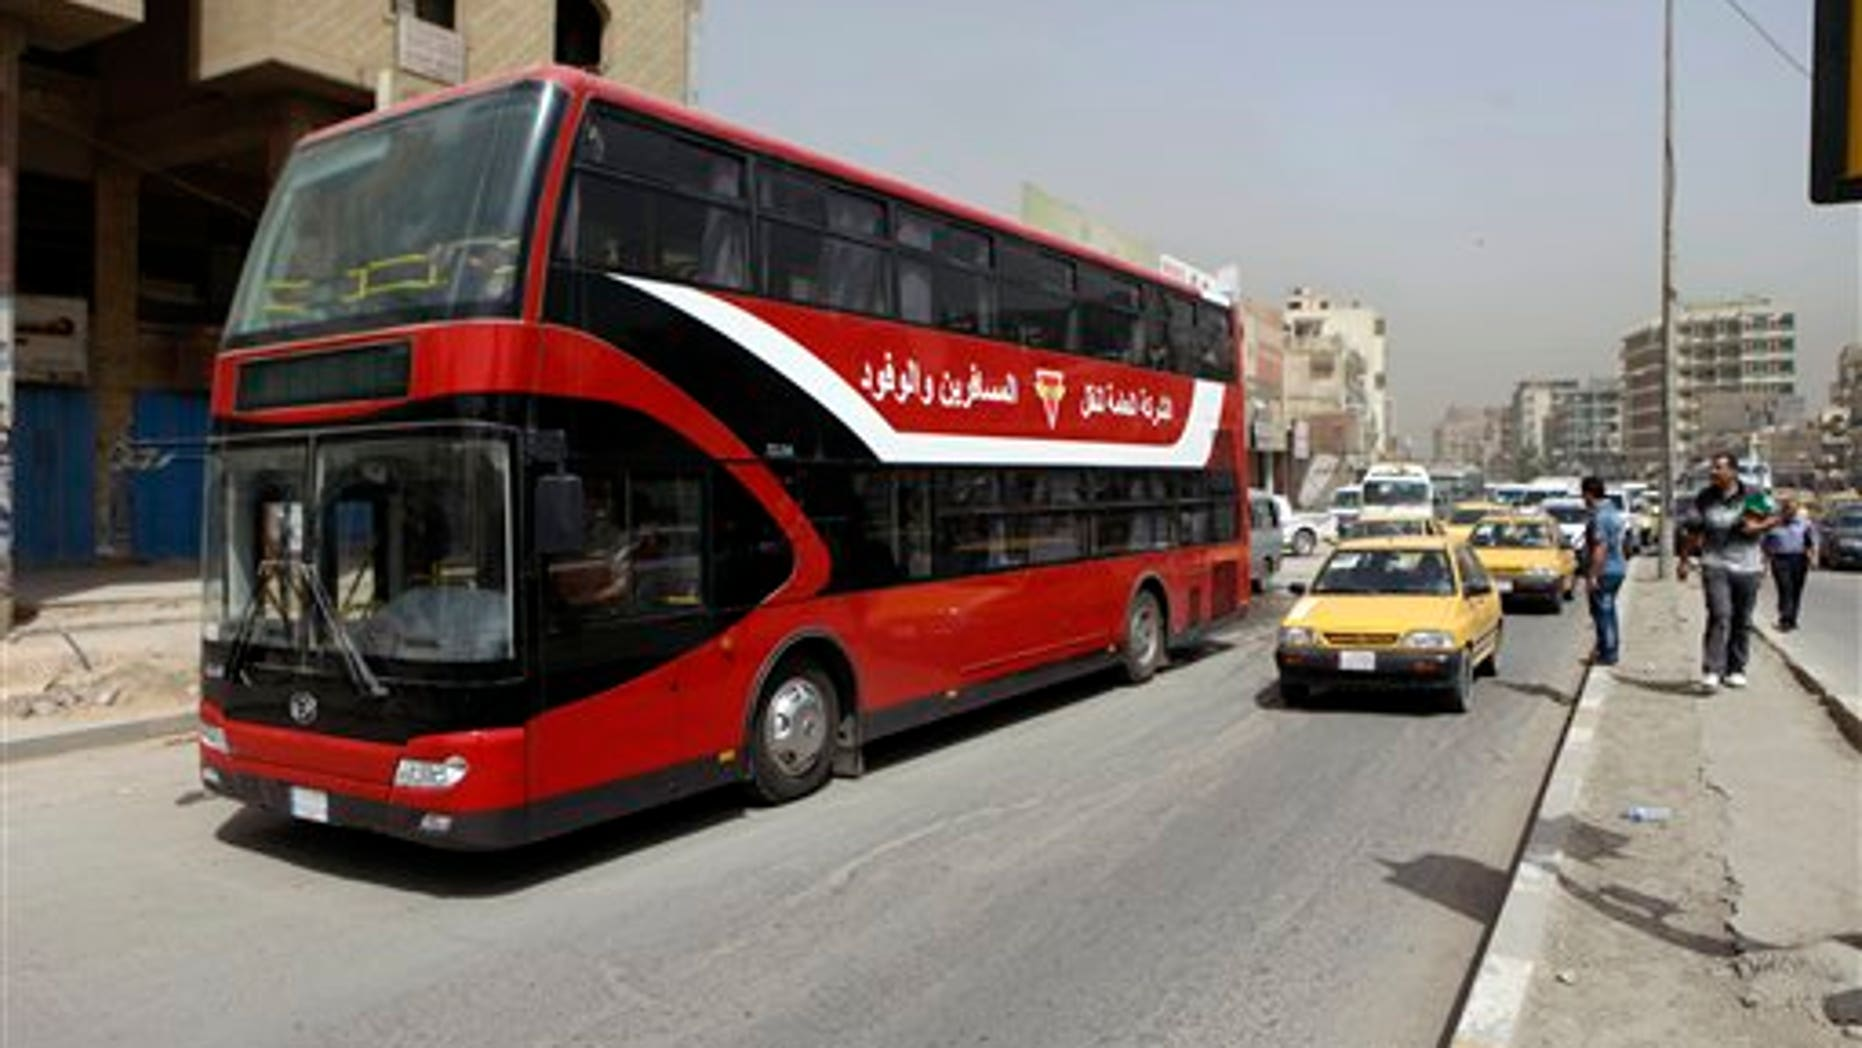 May 30, 2012: A double-decker bus is seen in downtown Baghdad, Iraq.